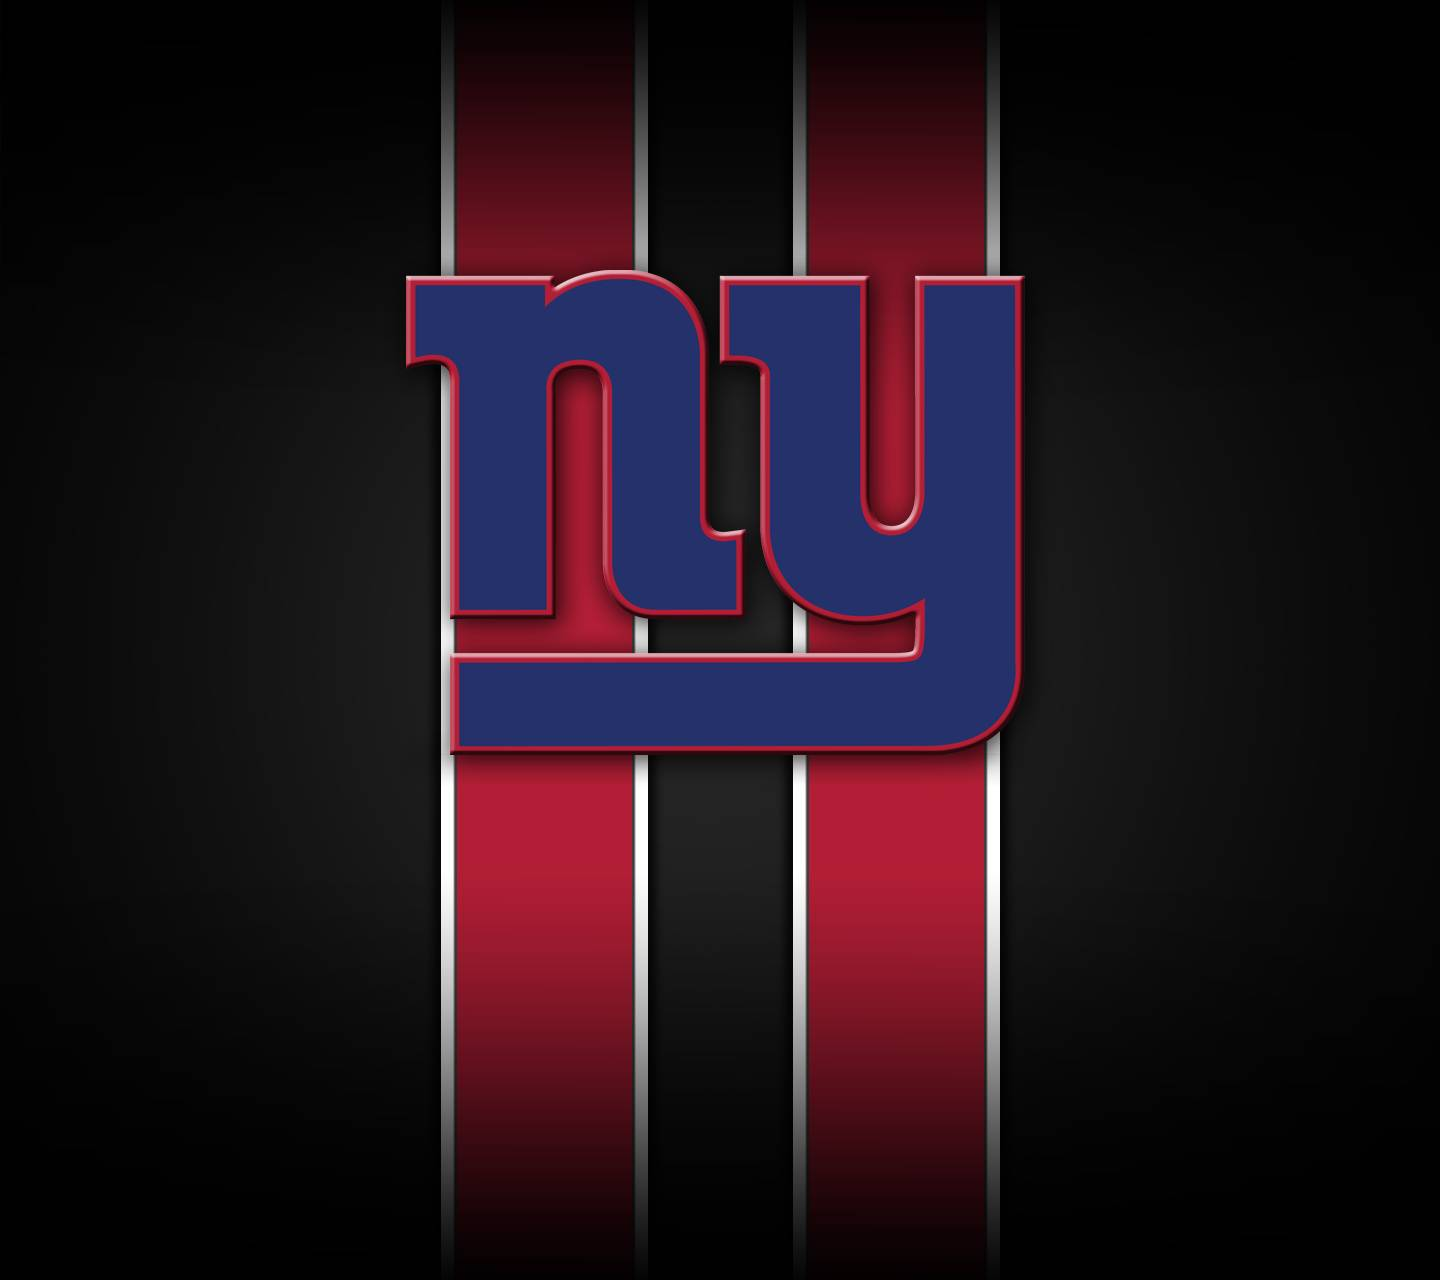 New York Giants Wallpaper By Aka Jace 5e Free On Zedge